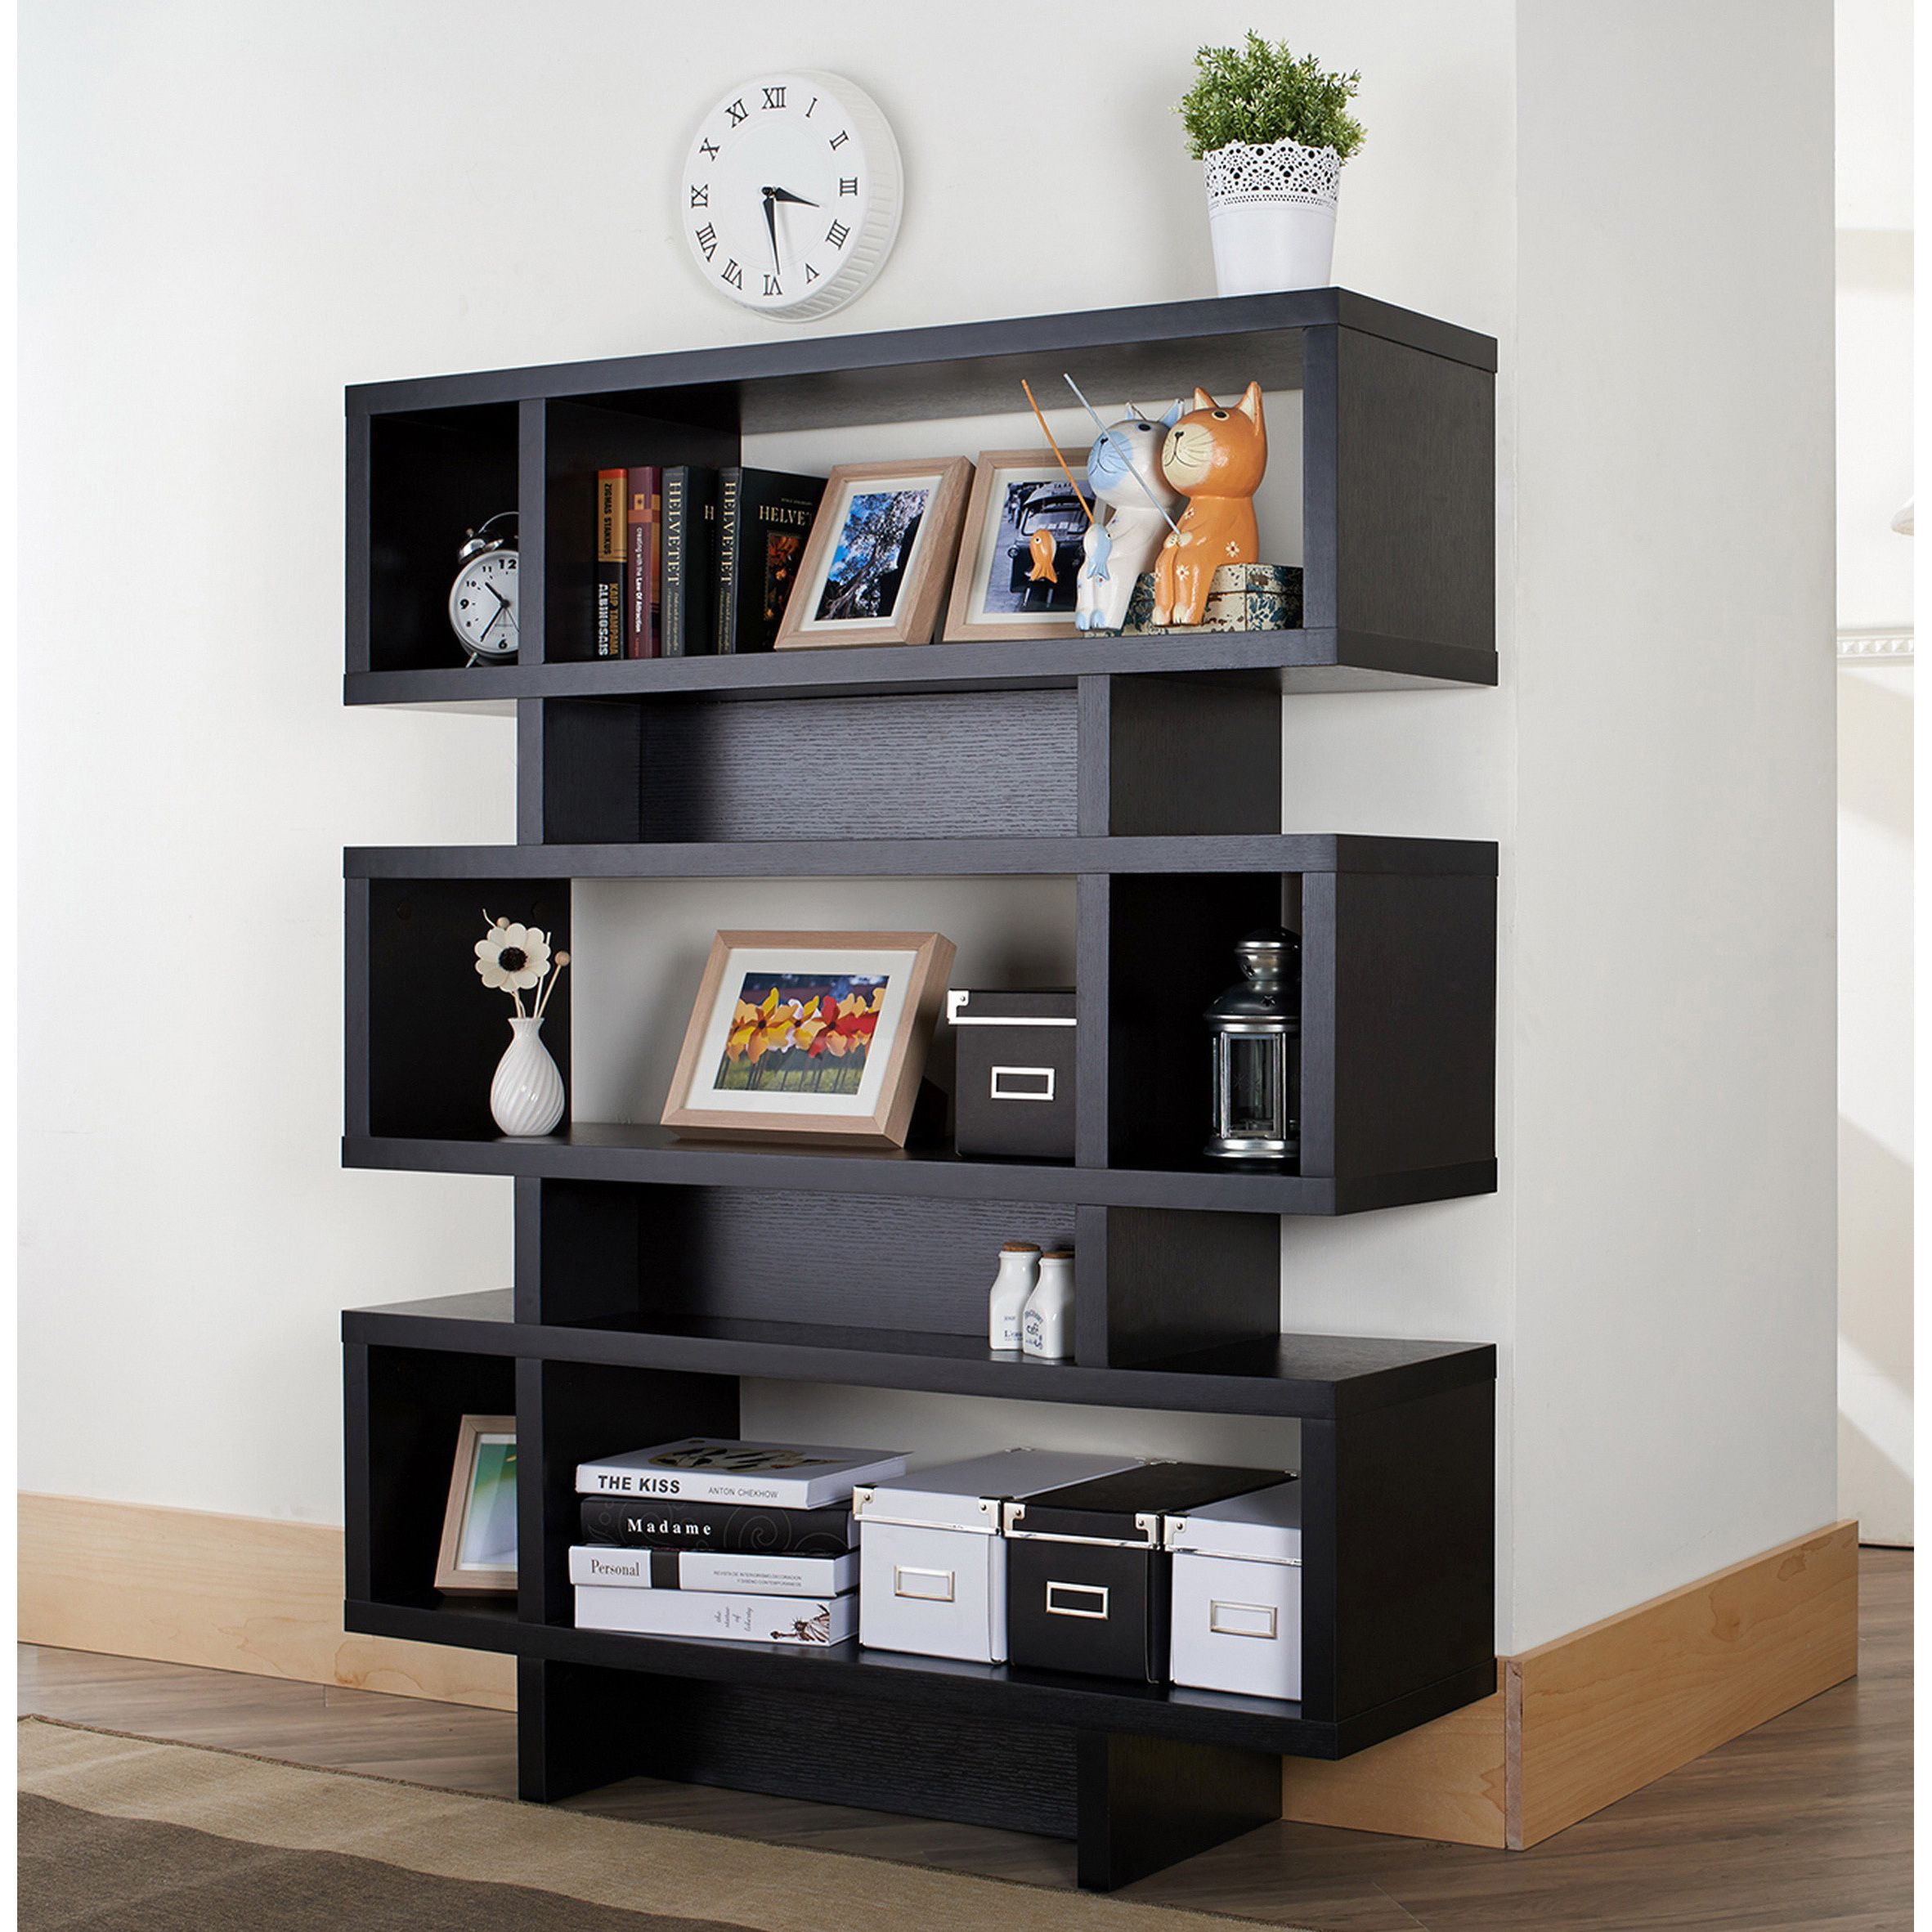 li u003eshowcase favorite collections with an expertly crafted bookcase rh pinterest com